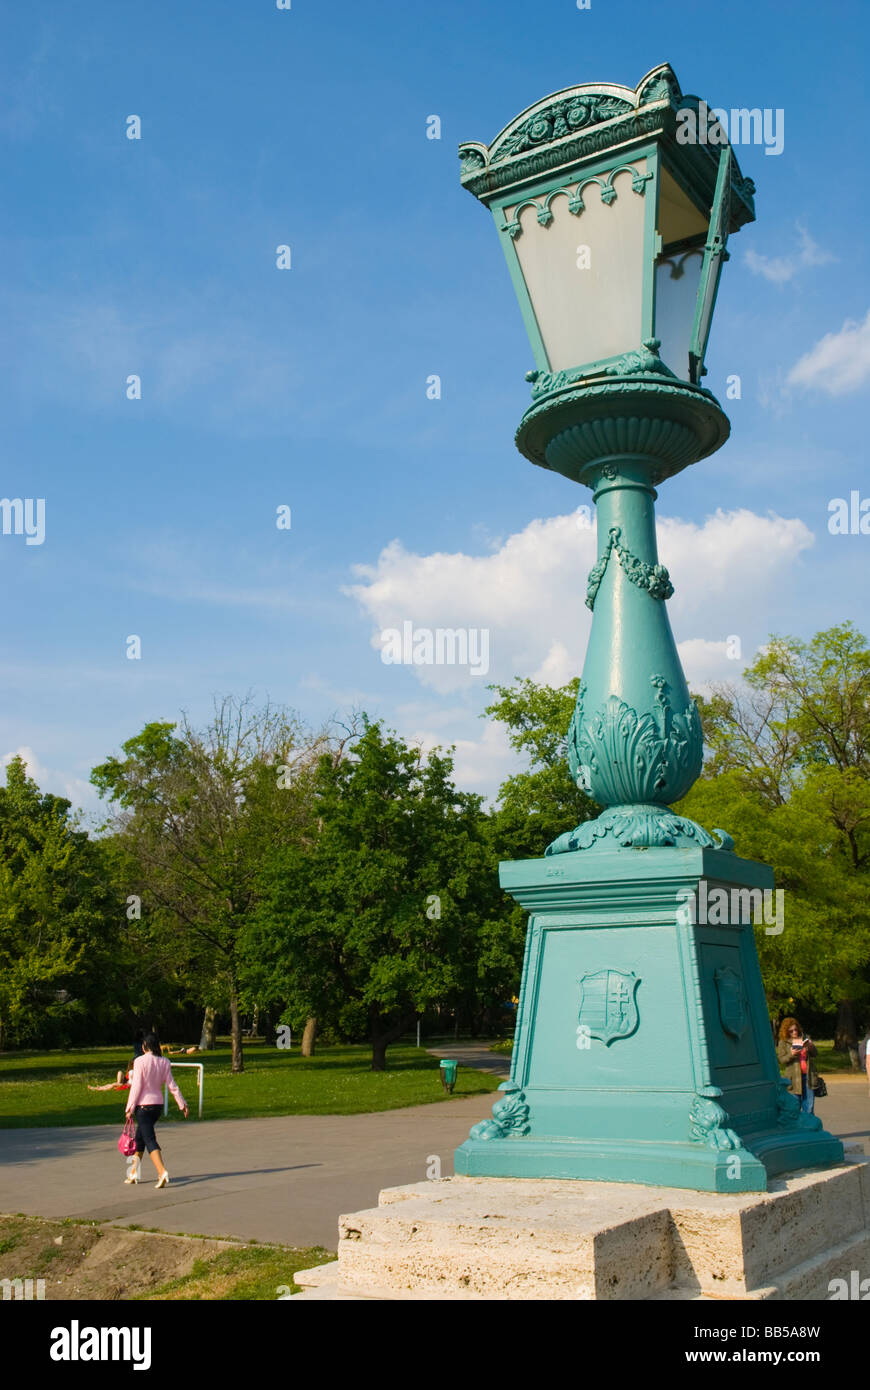 Lamppost at Varosliget the City Park in Budapest Hungary Europe - Stock Image